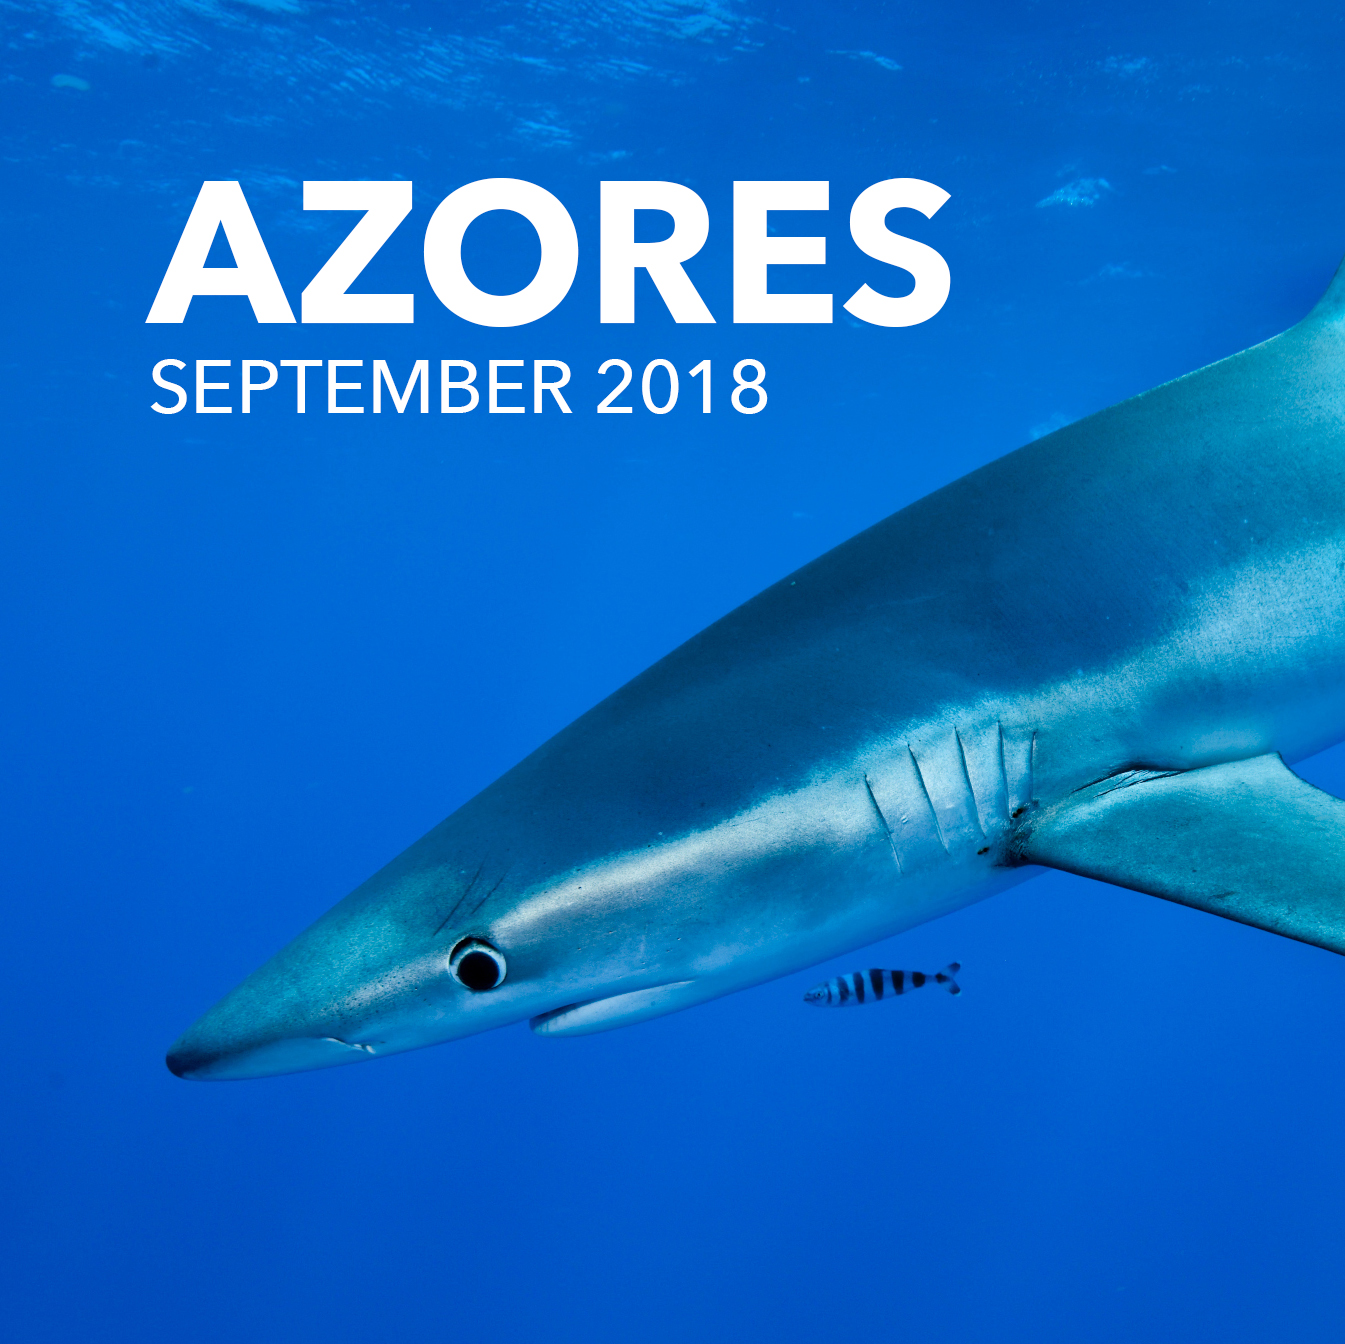 Shark Expedition to the Azores